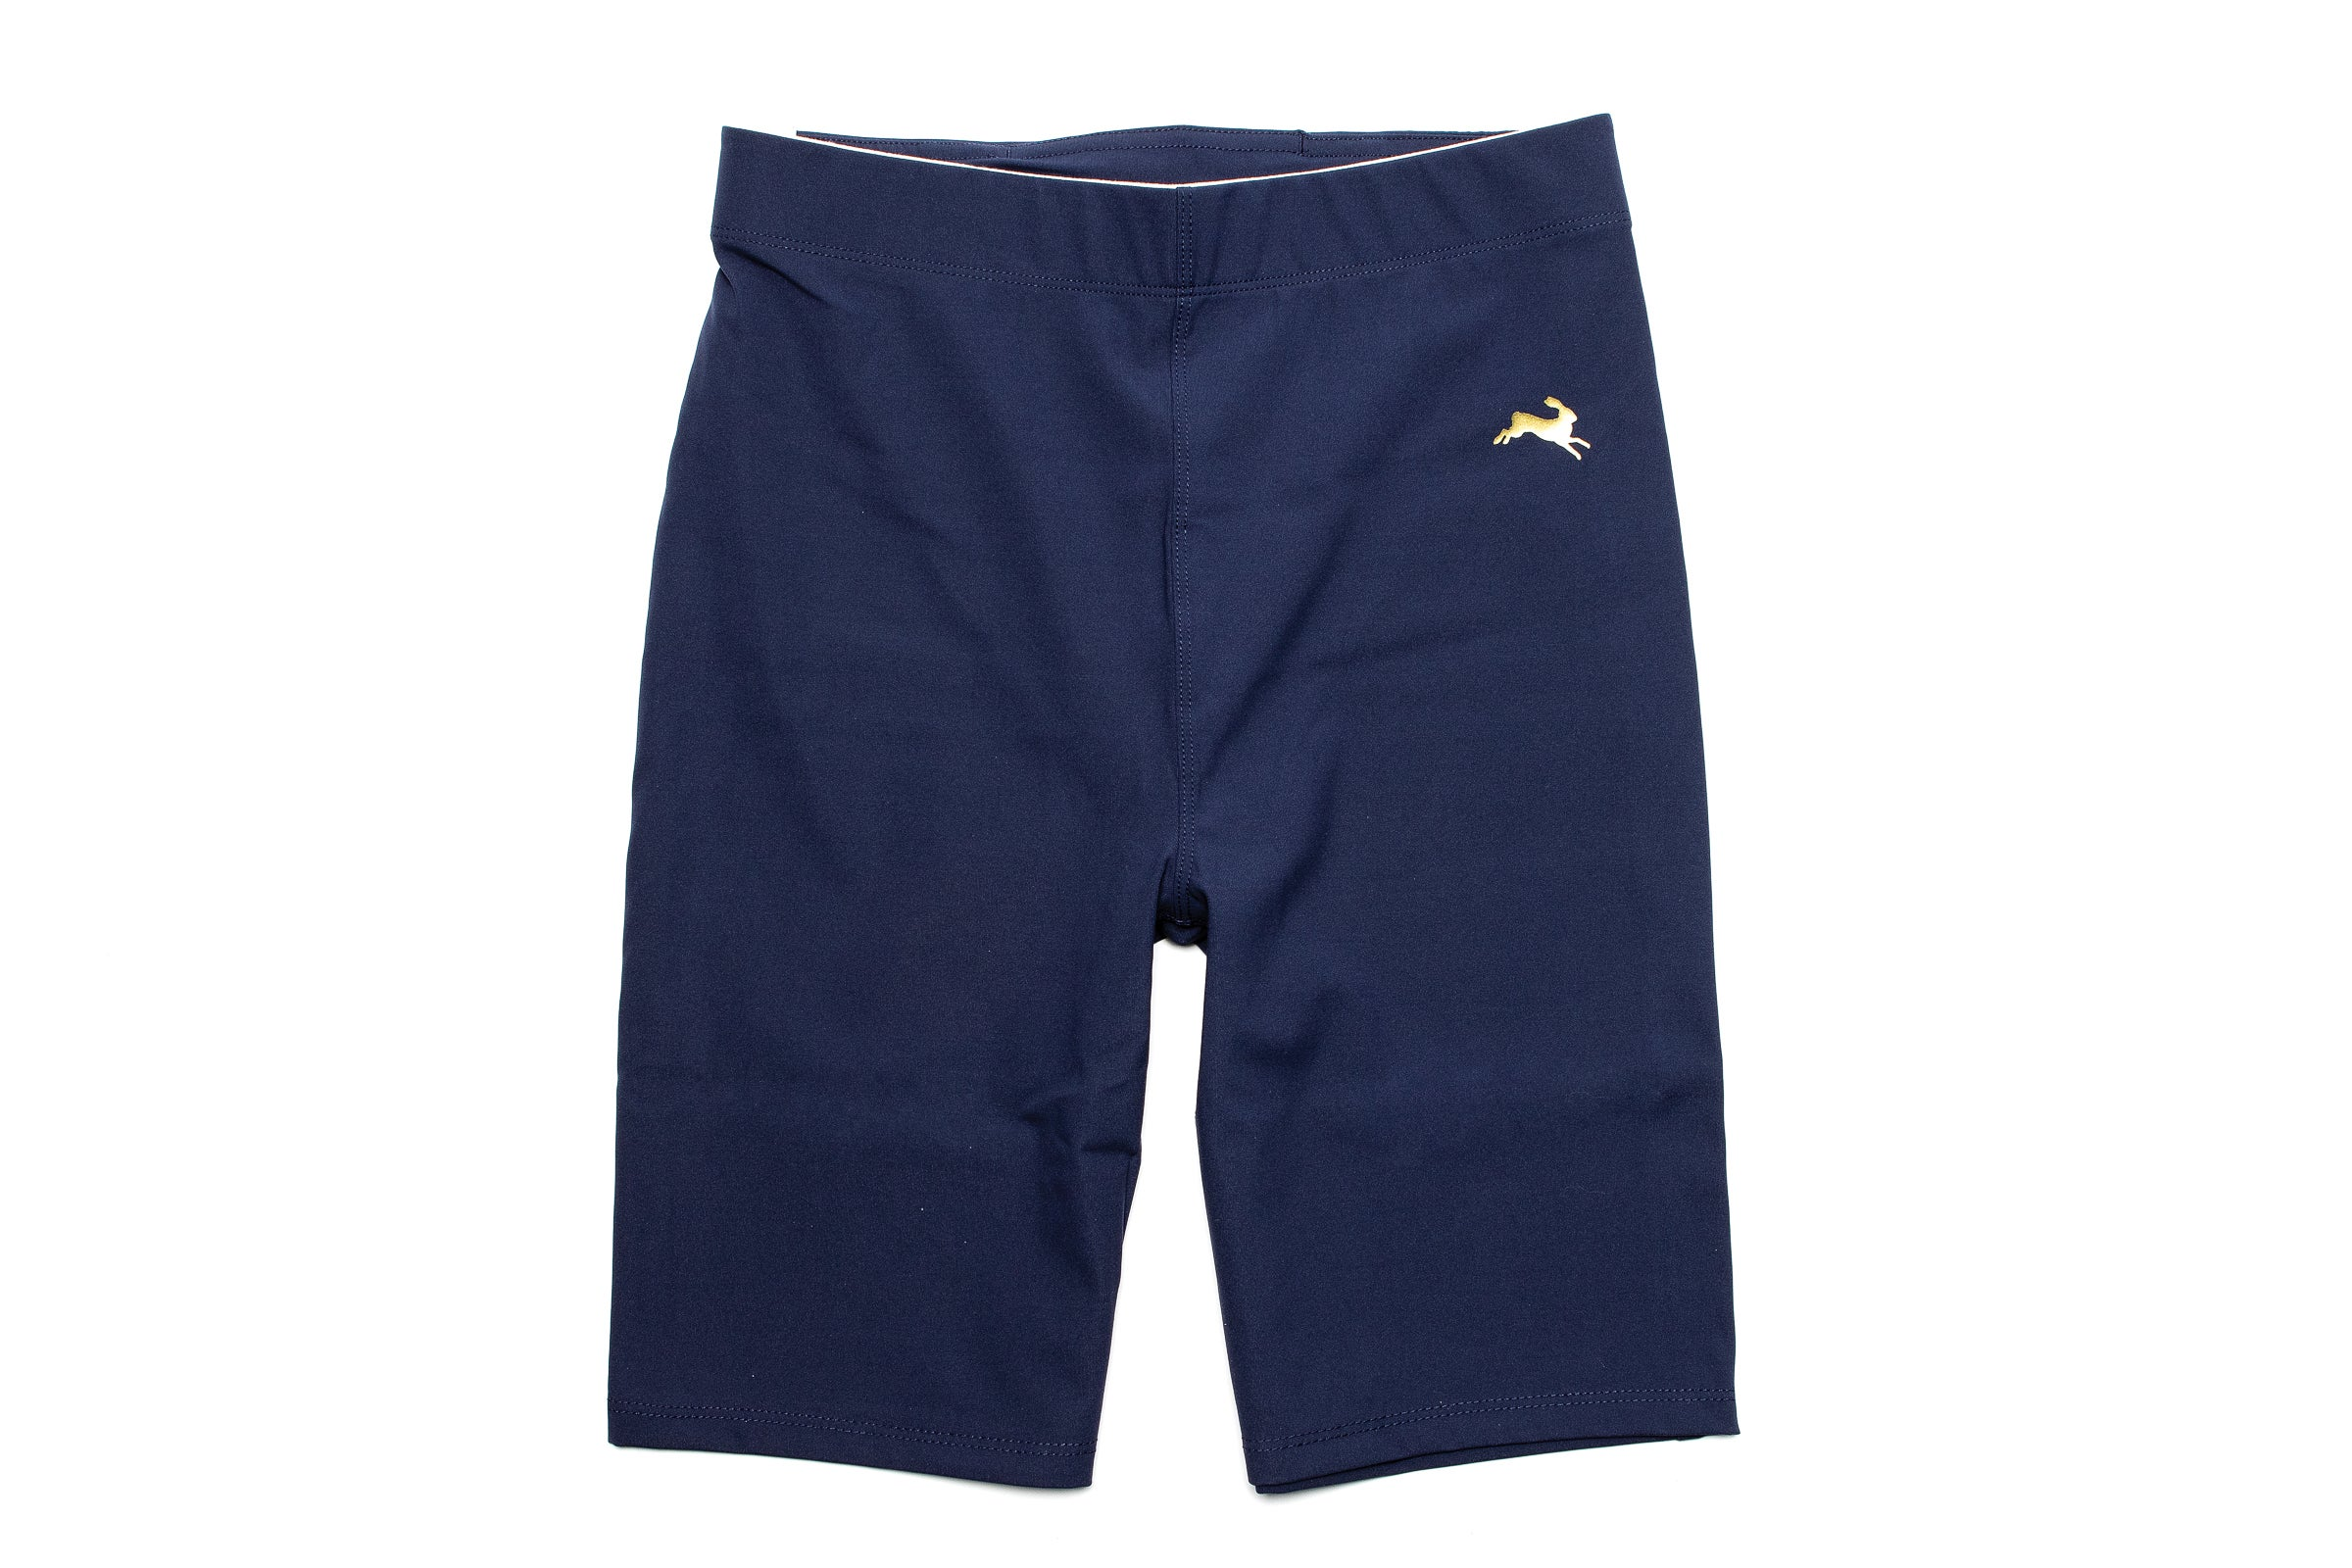 Tracksmith Allston Long Shorts